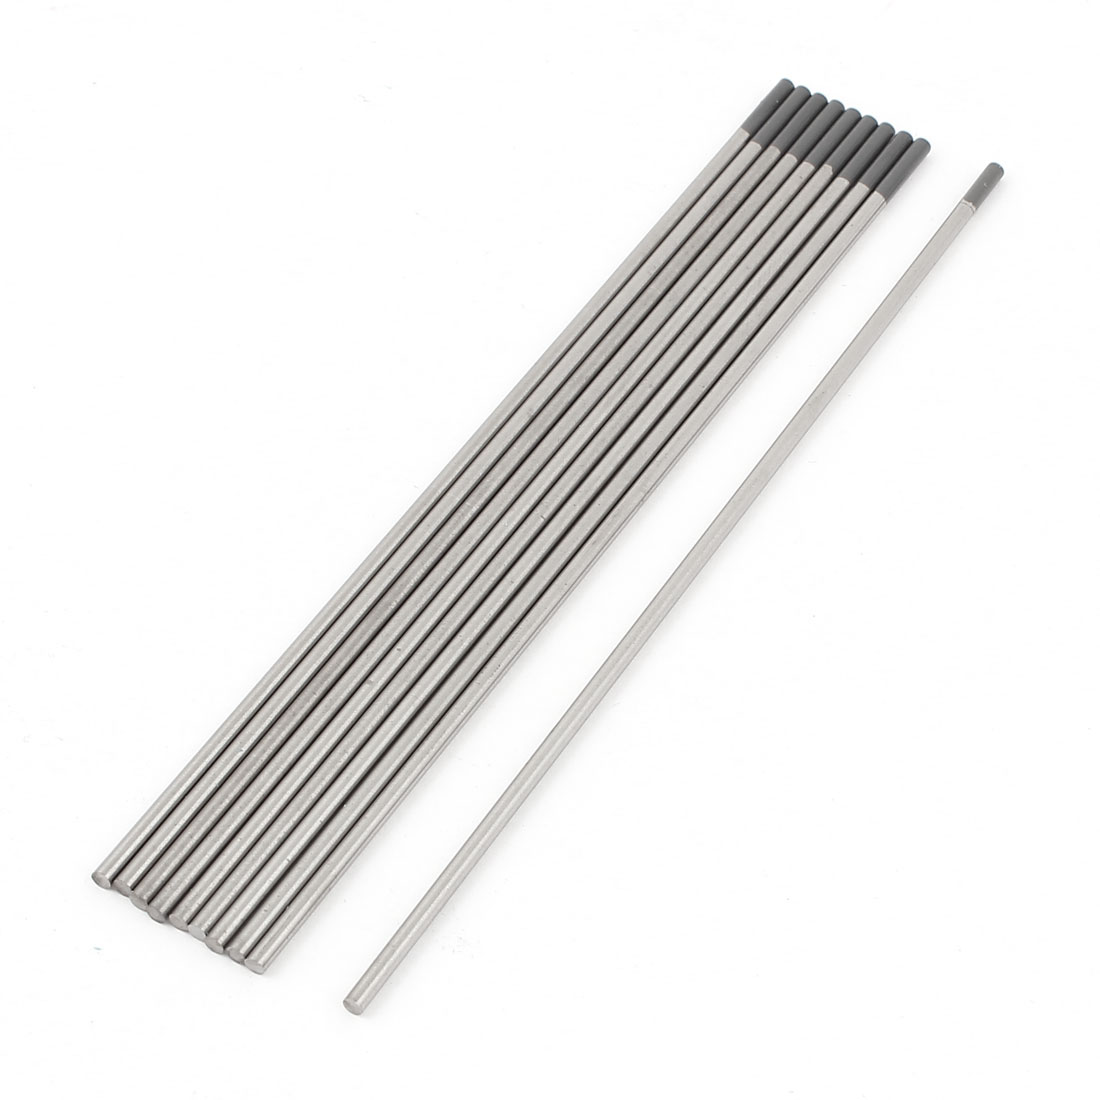 "10 Pcs TIG Welder 2% Ceriated Tungsten Electrodes WC20 3/32"" x 6"""